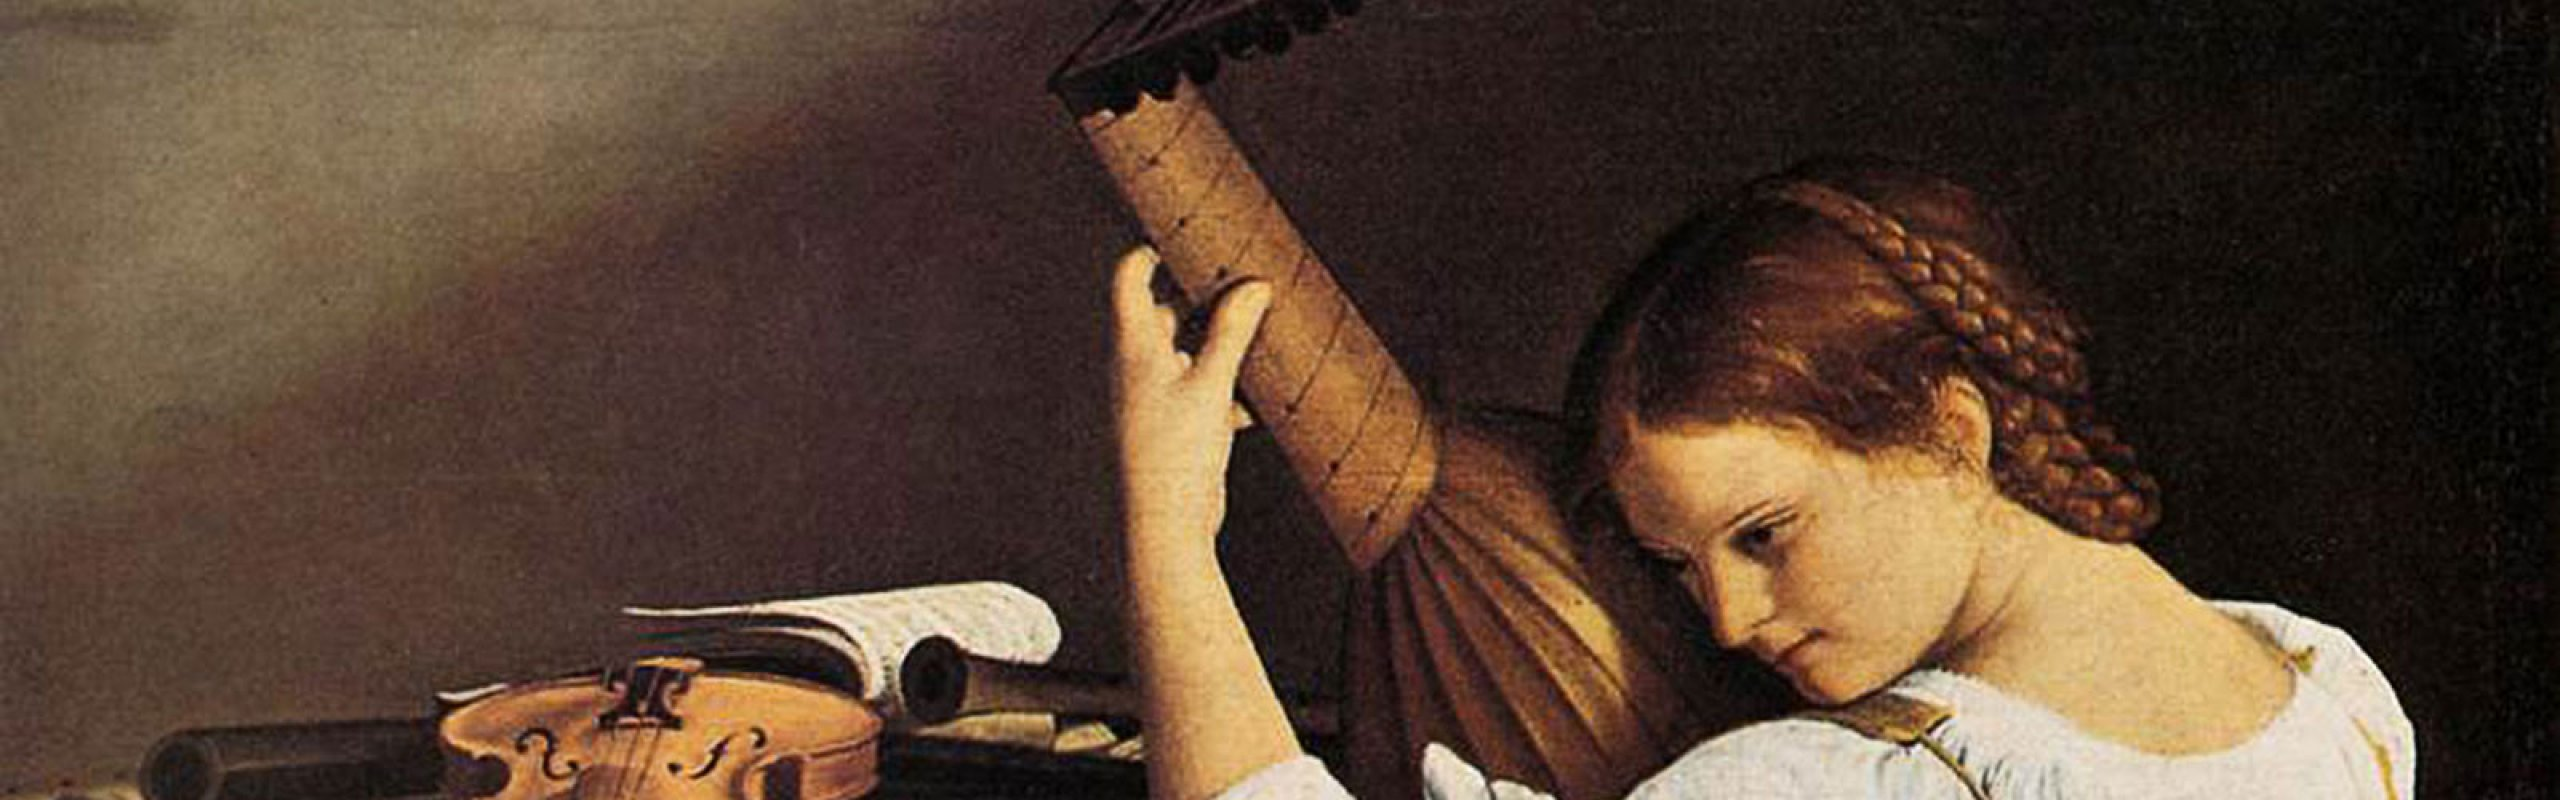 La liberazione della Donna: music, theatre and sexual politics in early Seicento Florence